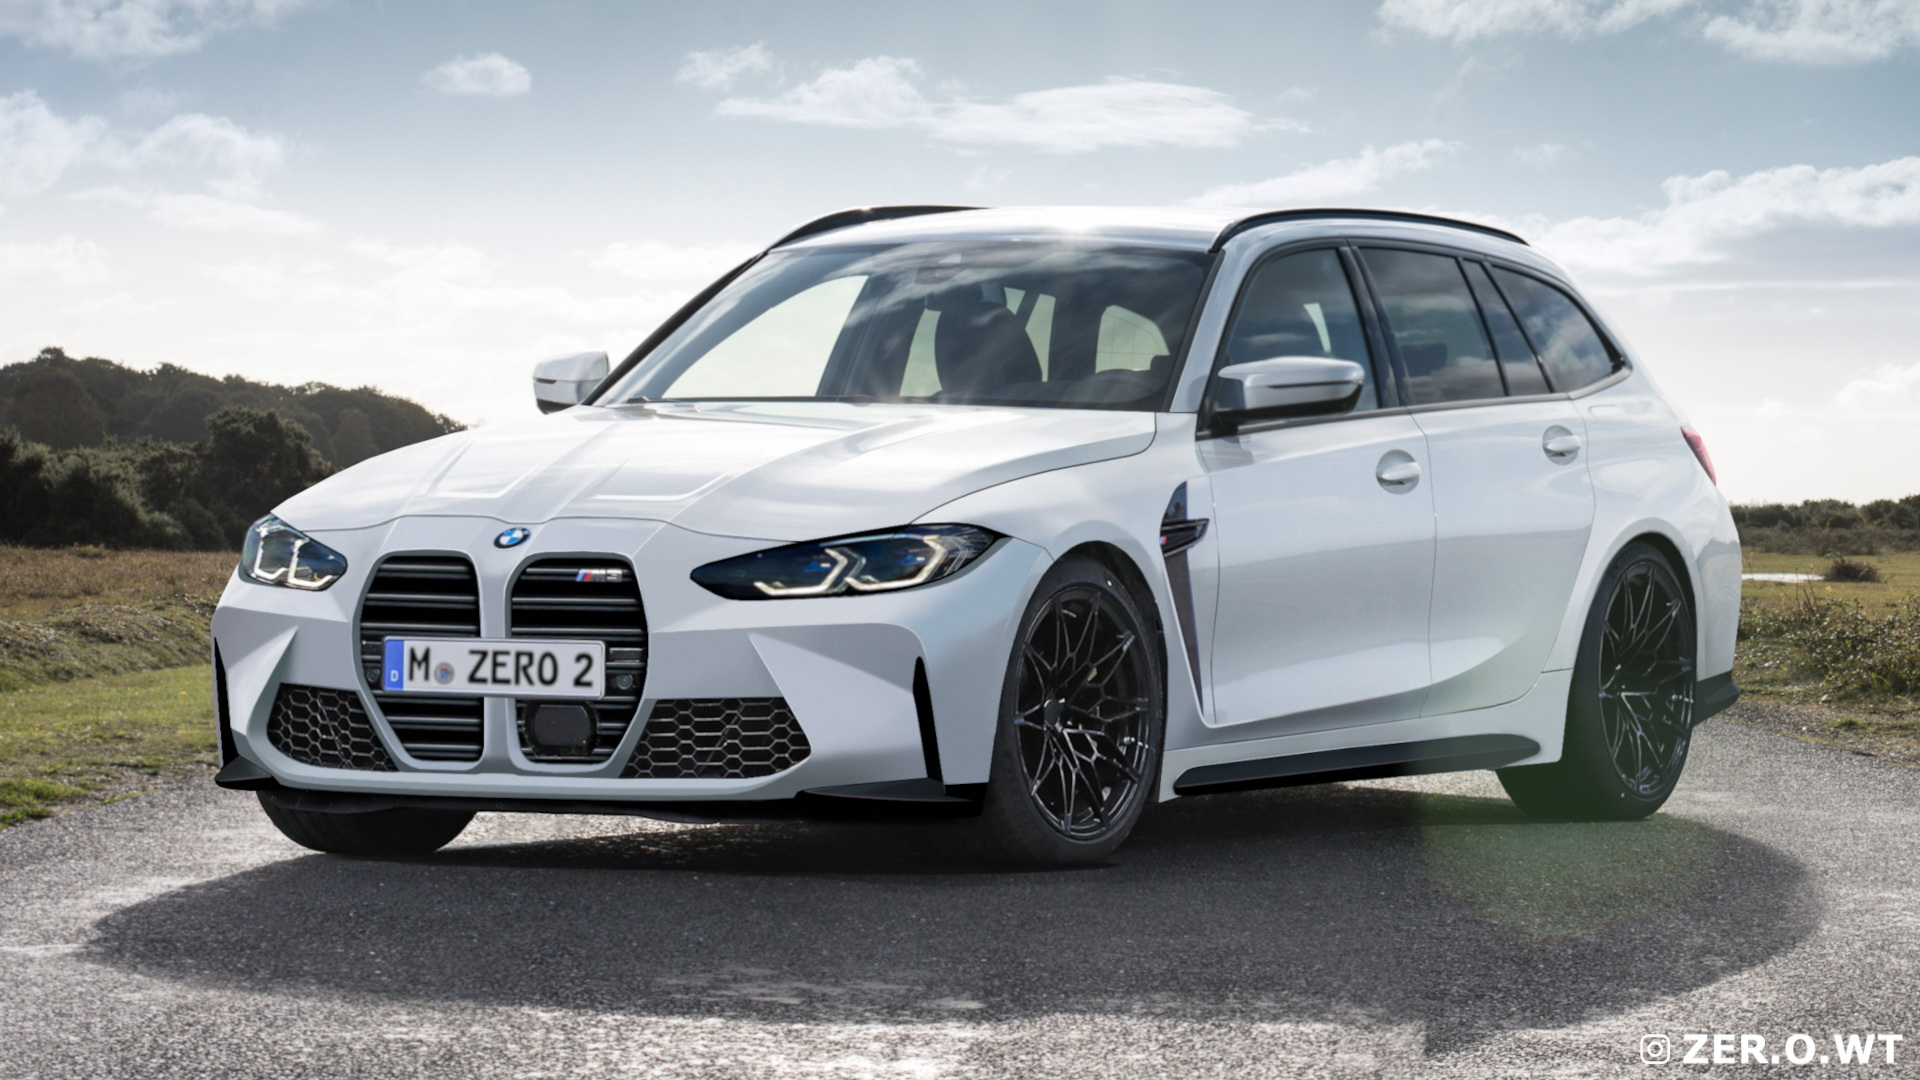 Here's An Illustrated Look At The 2022 BMW M3 Touring ...